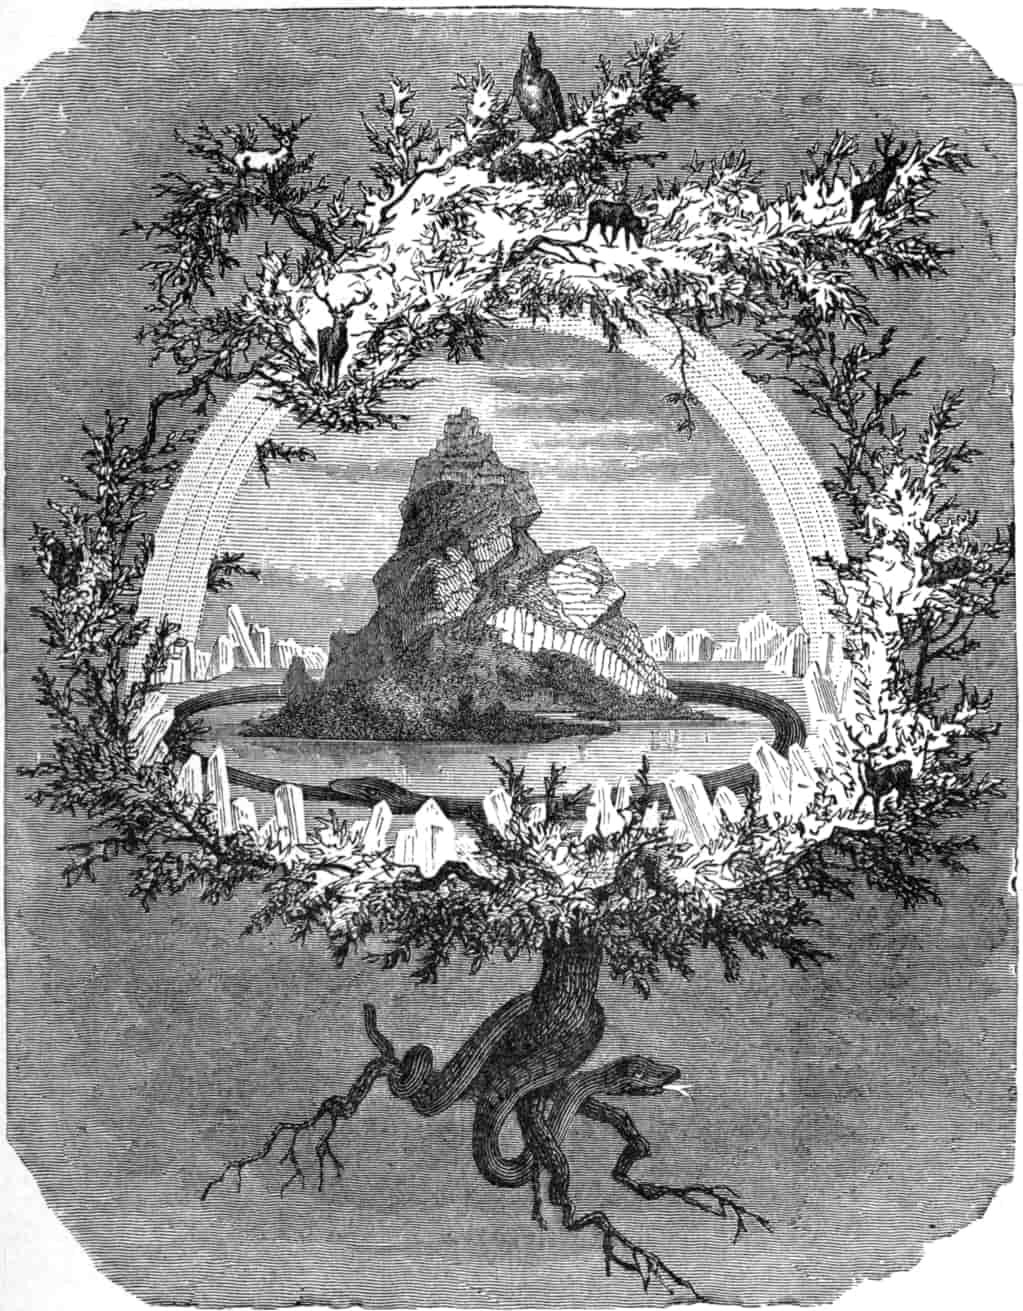 Old Norse world-ash Yggdrasil, whose roots reach down into hel, the region of the dead, while its topmost branches touch the realms of the gods. By Friedrich Wilhelm Heine